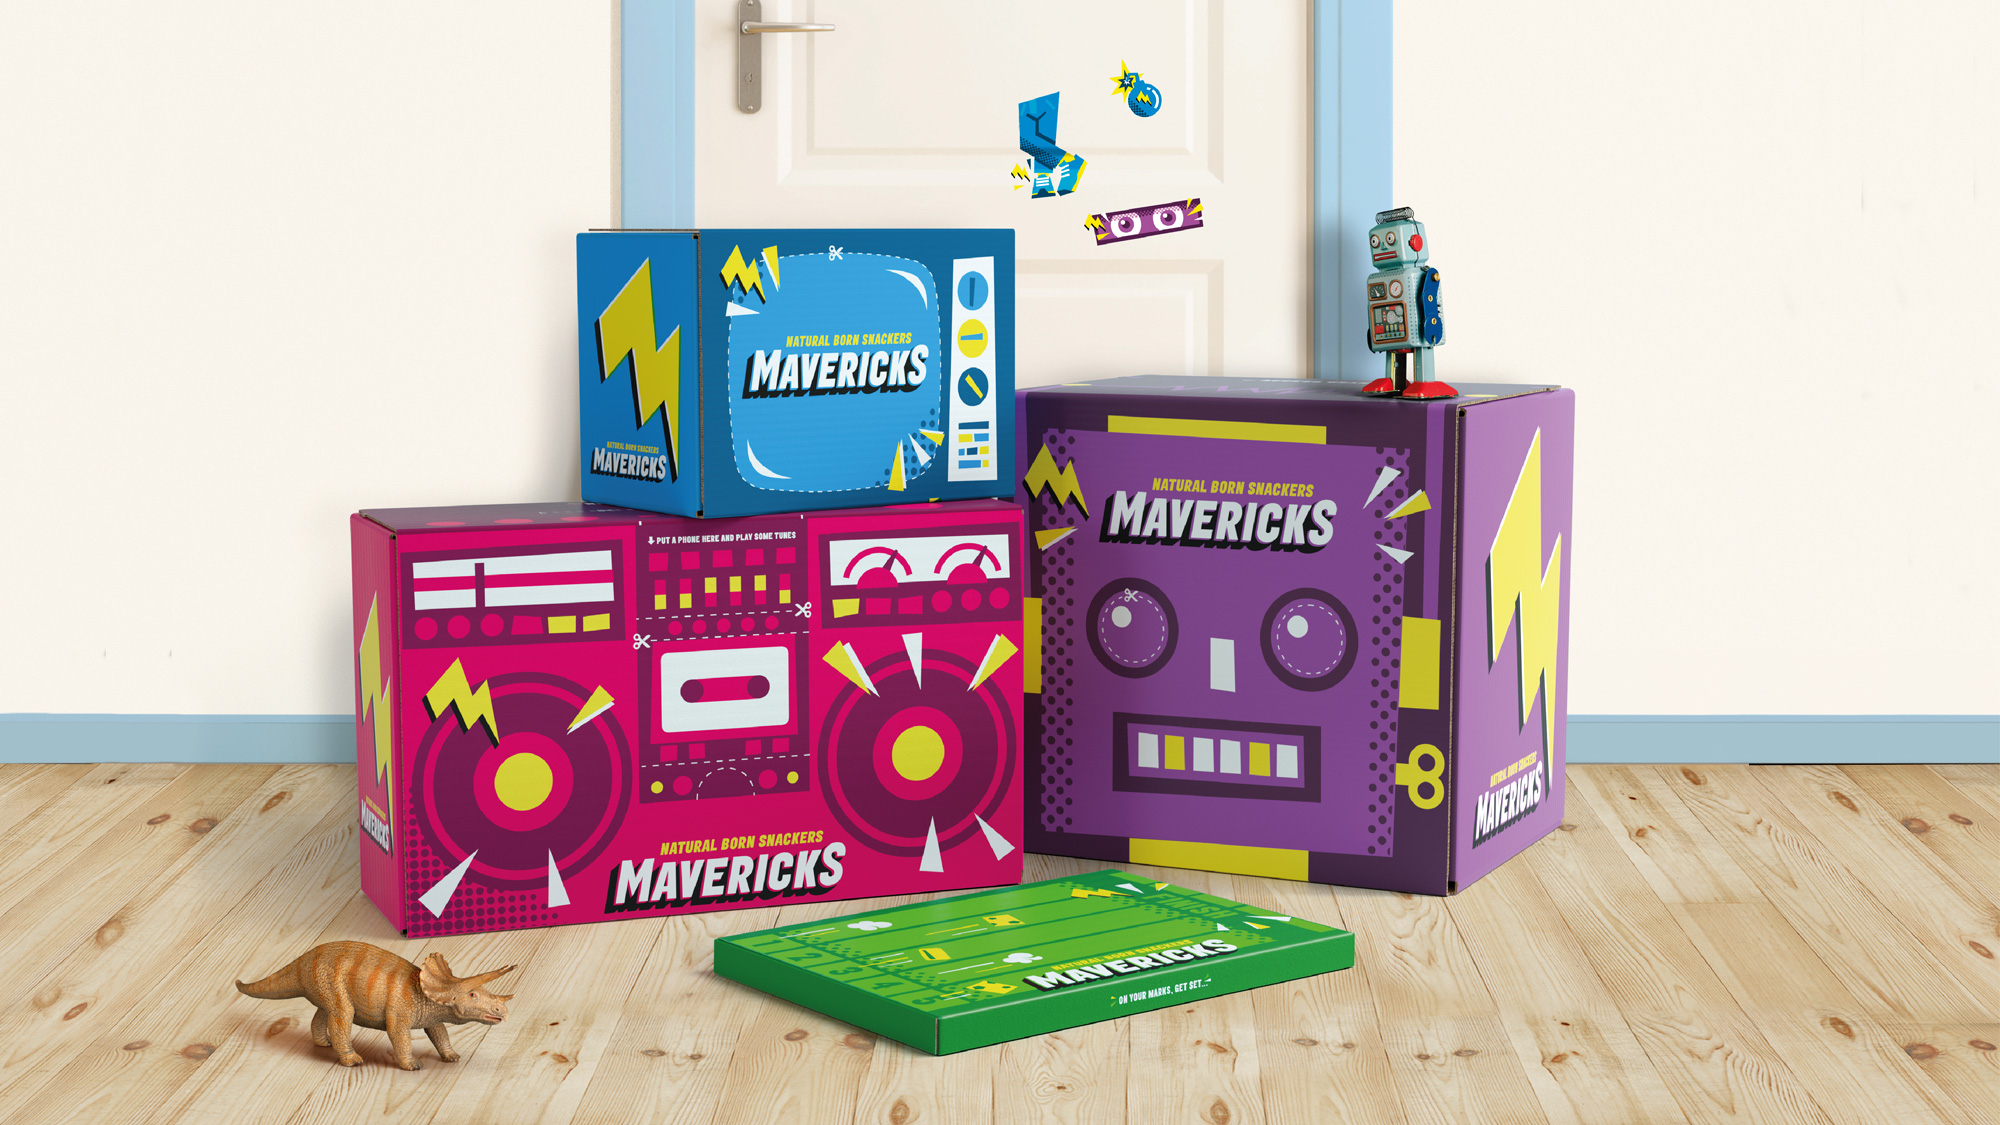 New Logo and Packaging for Mavericks Snacks by Jones Knowles Ritchie